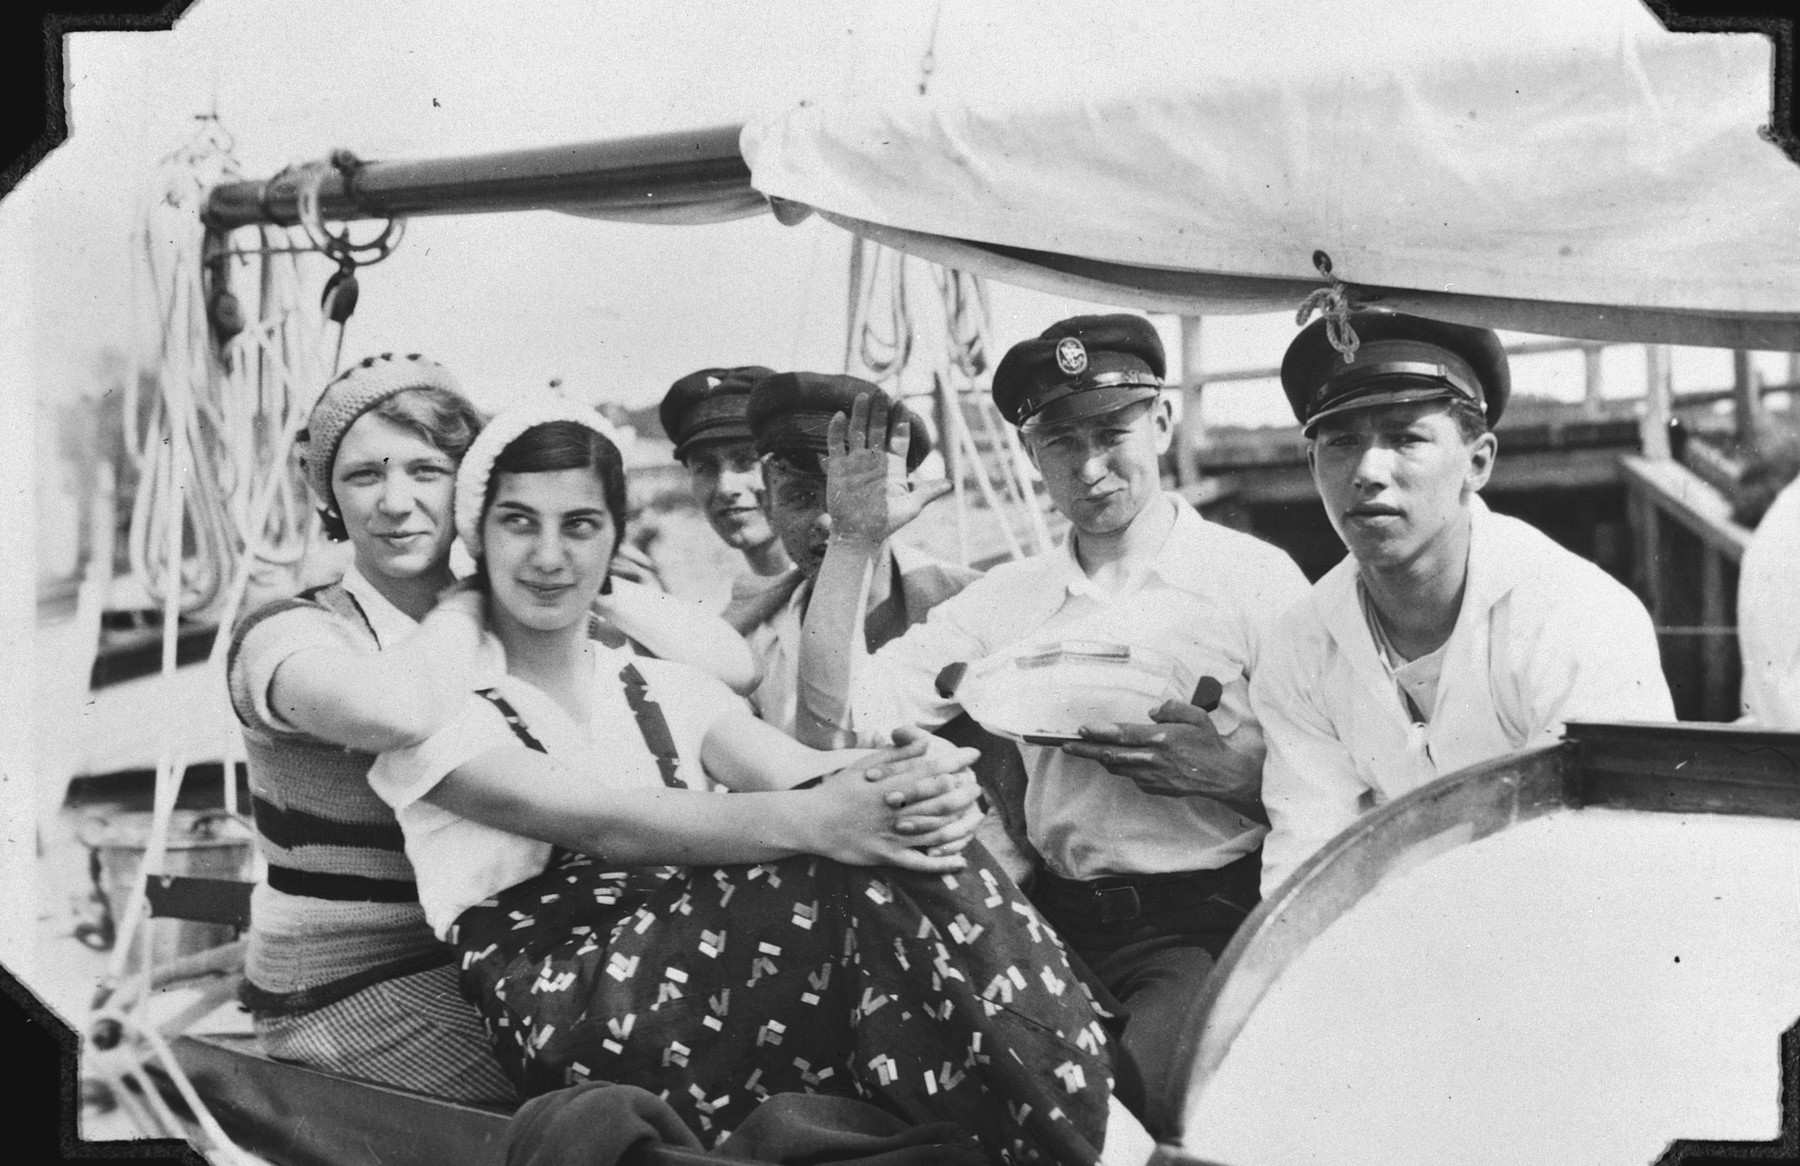 A group of friends goes for a boat ride in Kahlberg.  Among those pictured is Hildegard Wolff (second from left).